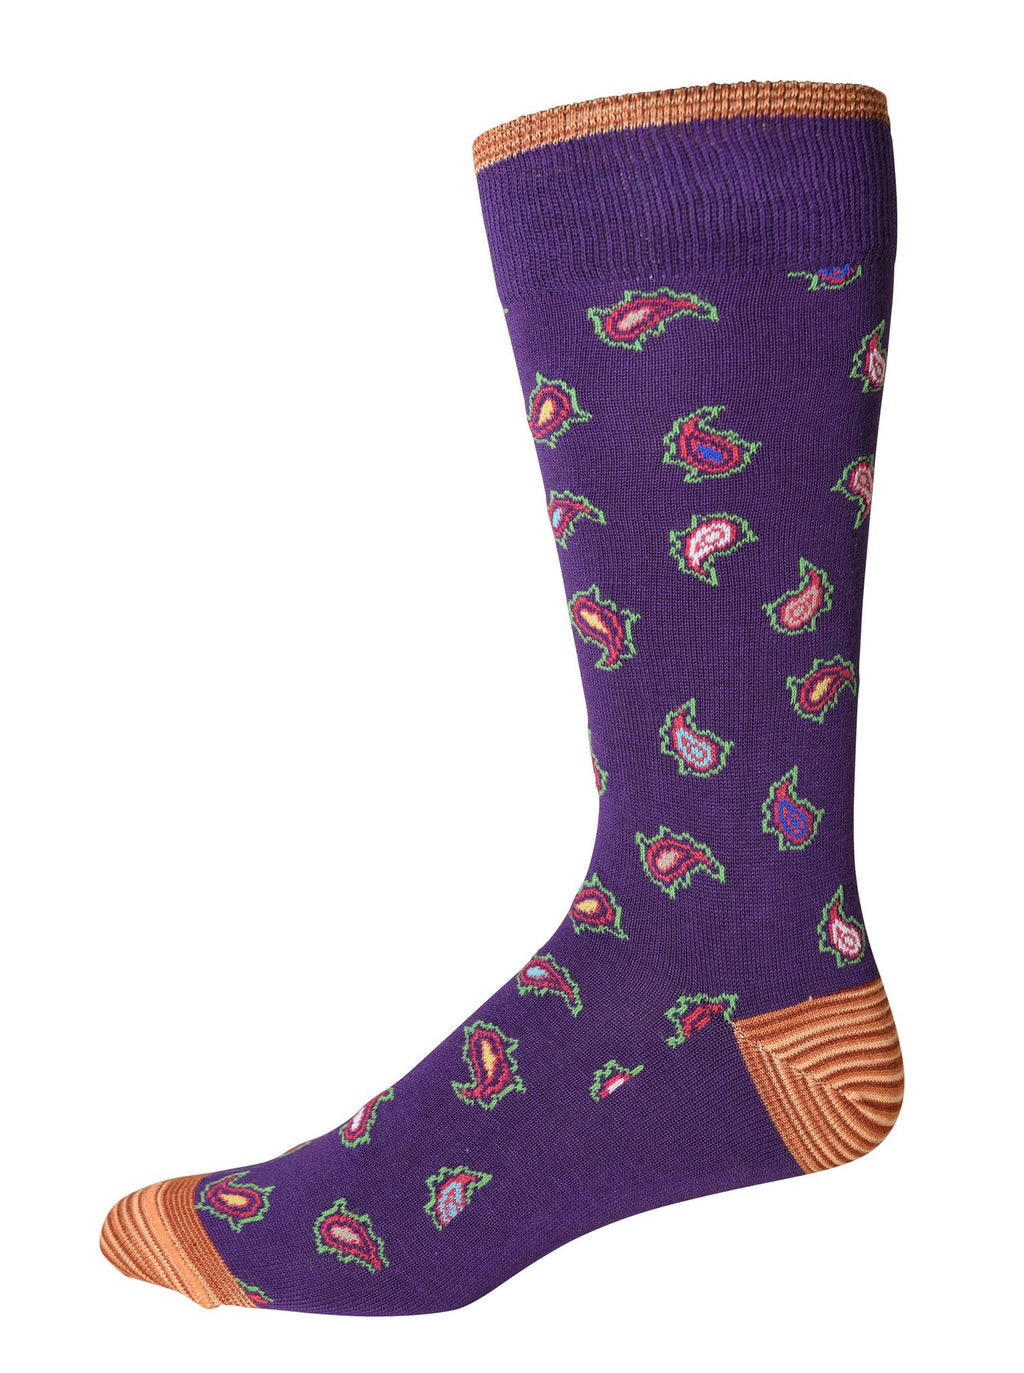 Robert Graham Socks - Camber Purple